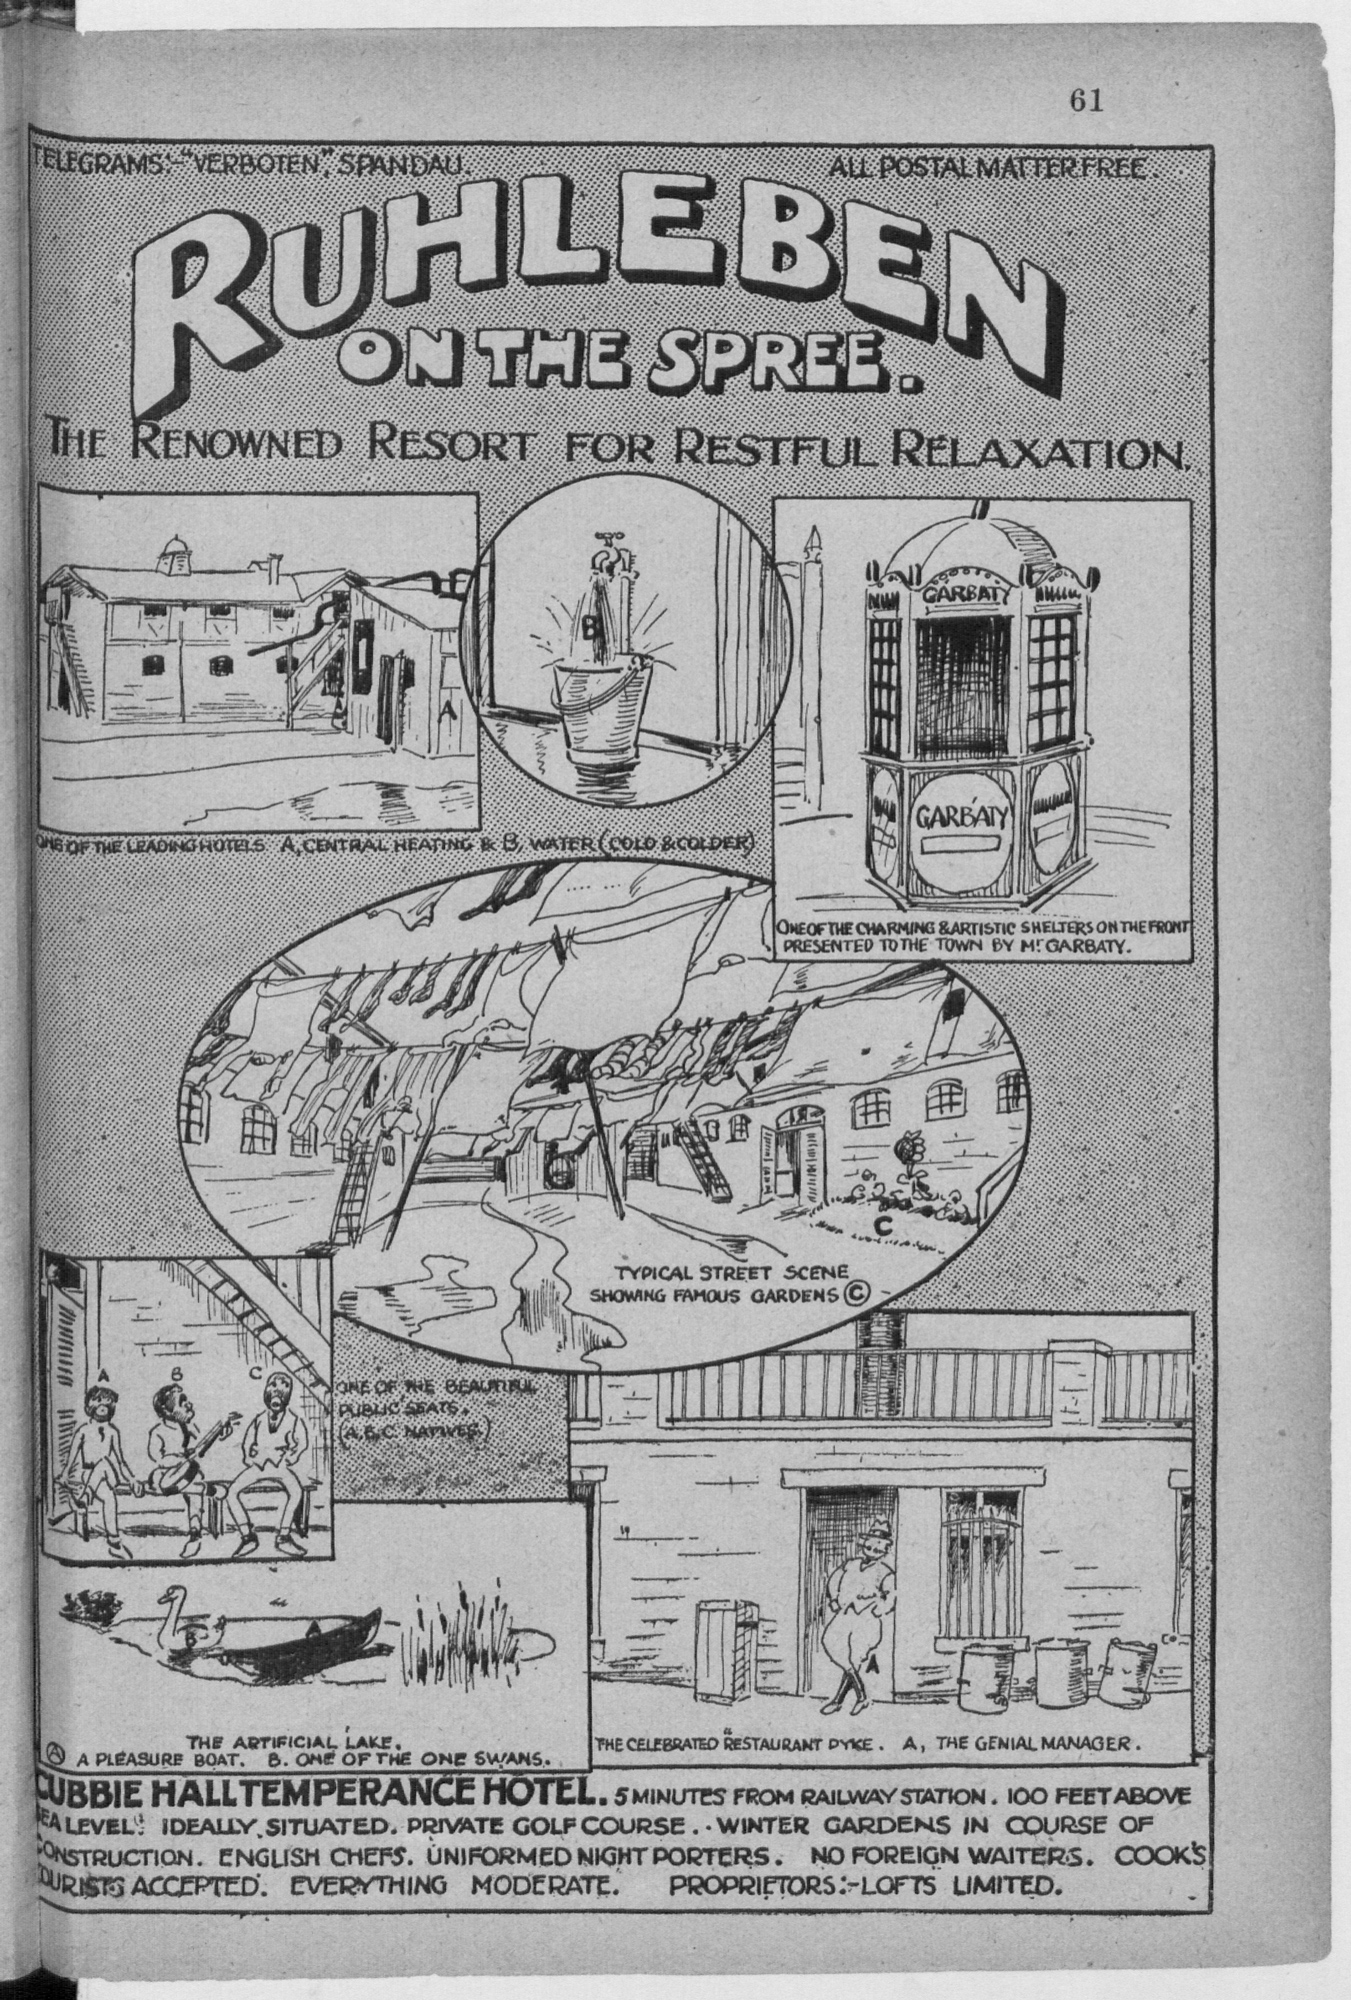 Image of the title page of Ruhleben Camp Magazine